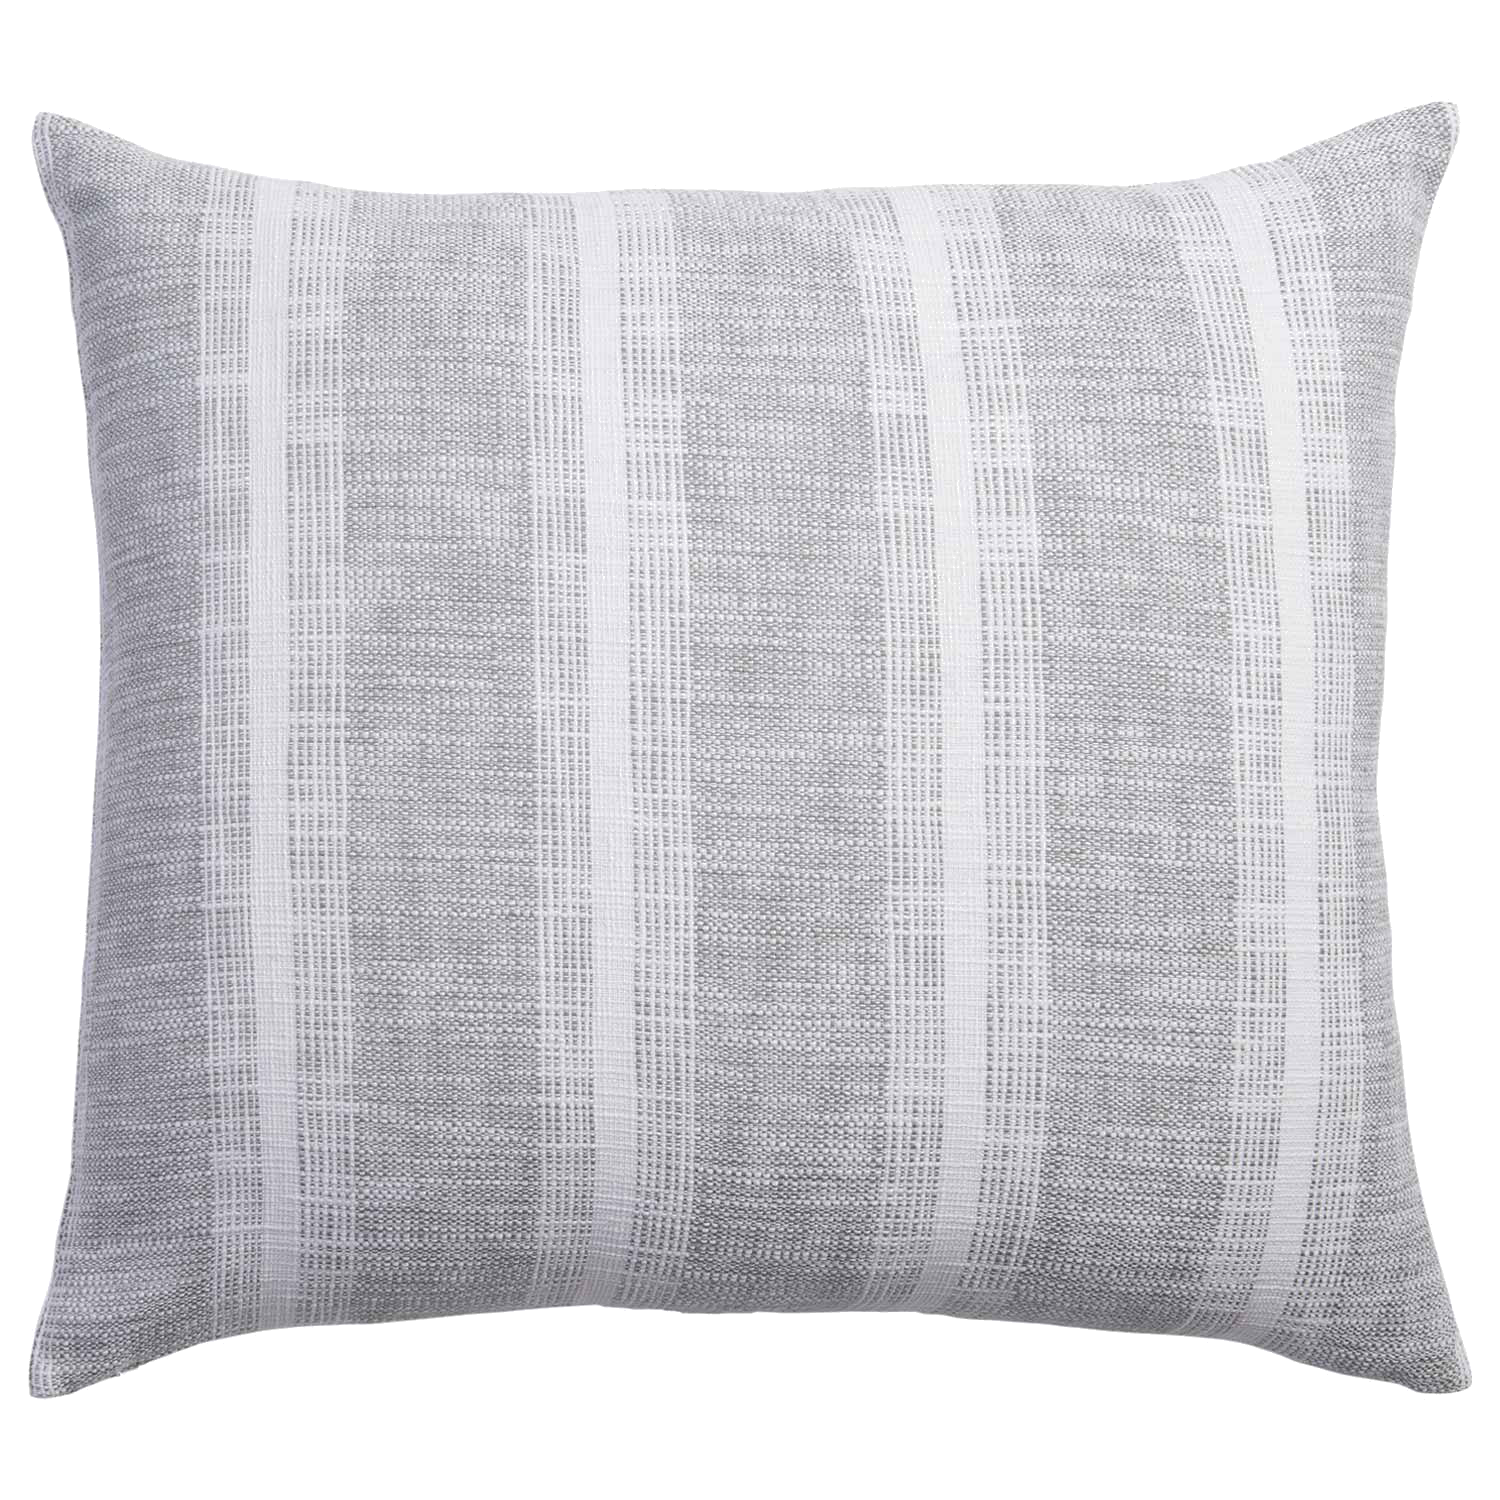 Niccan Gray King Euro Pillow